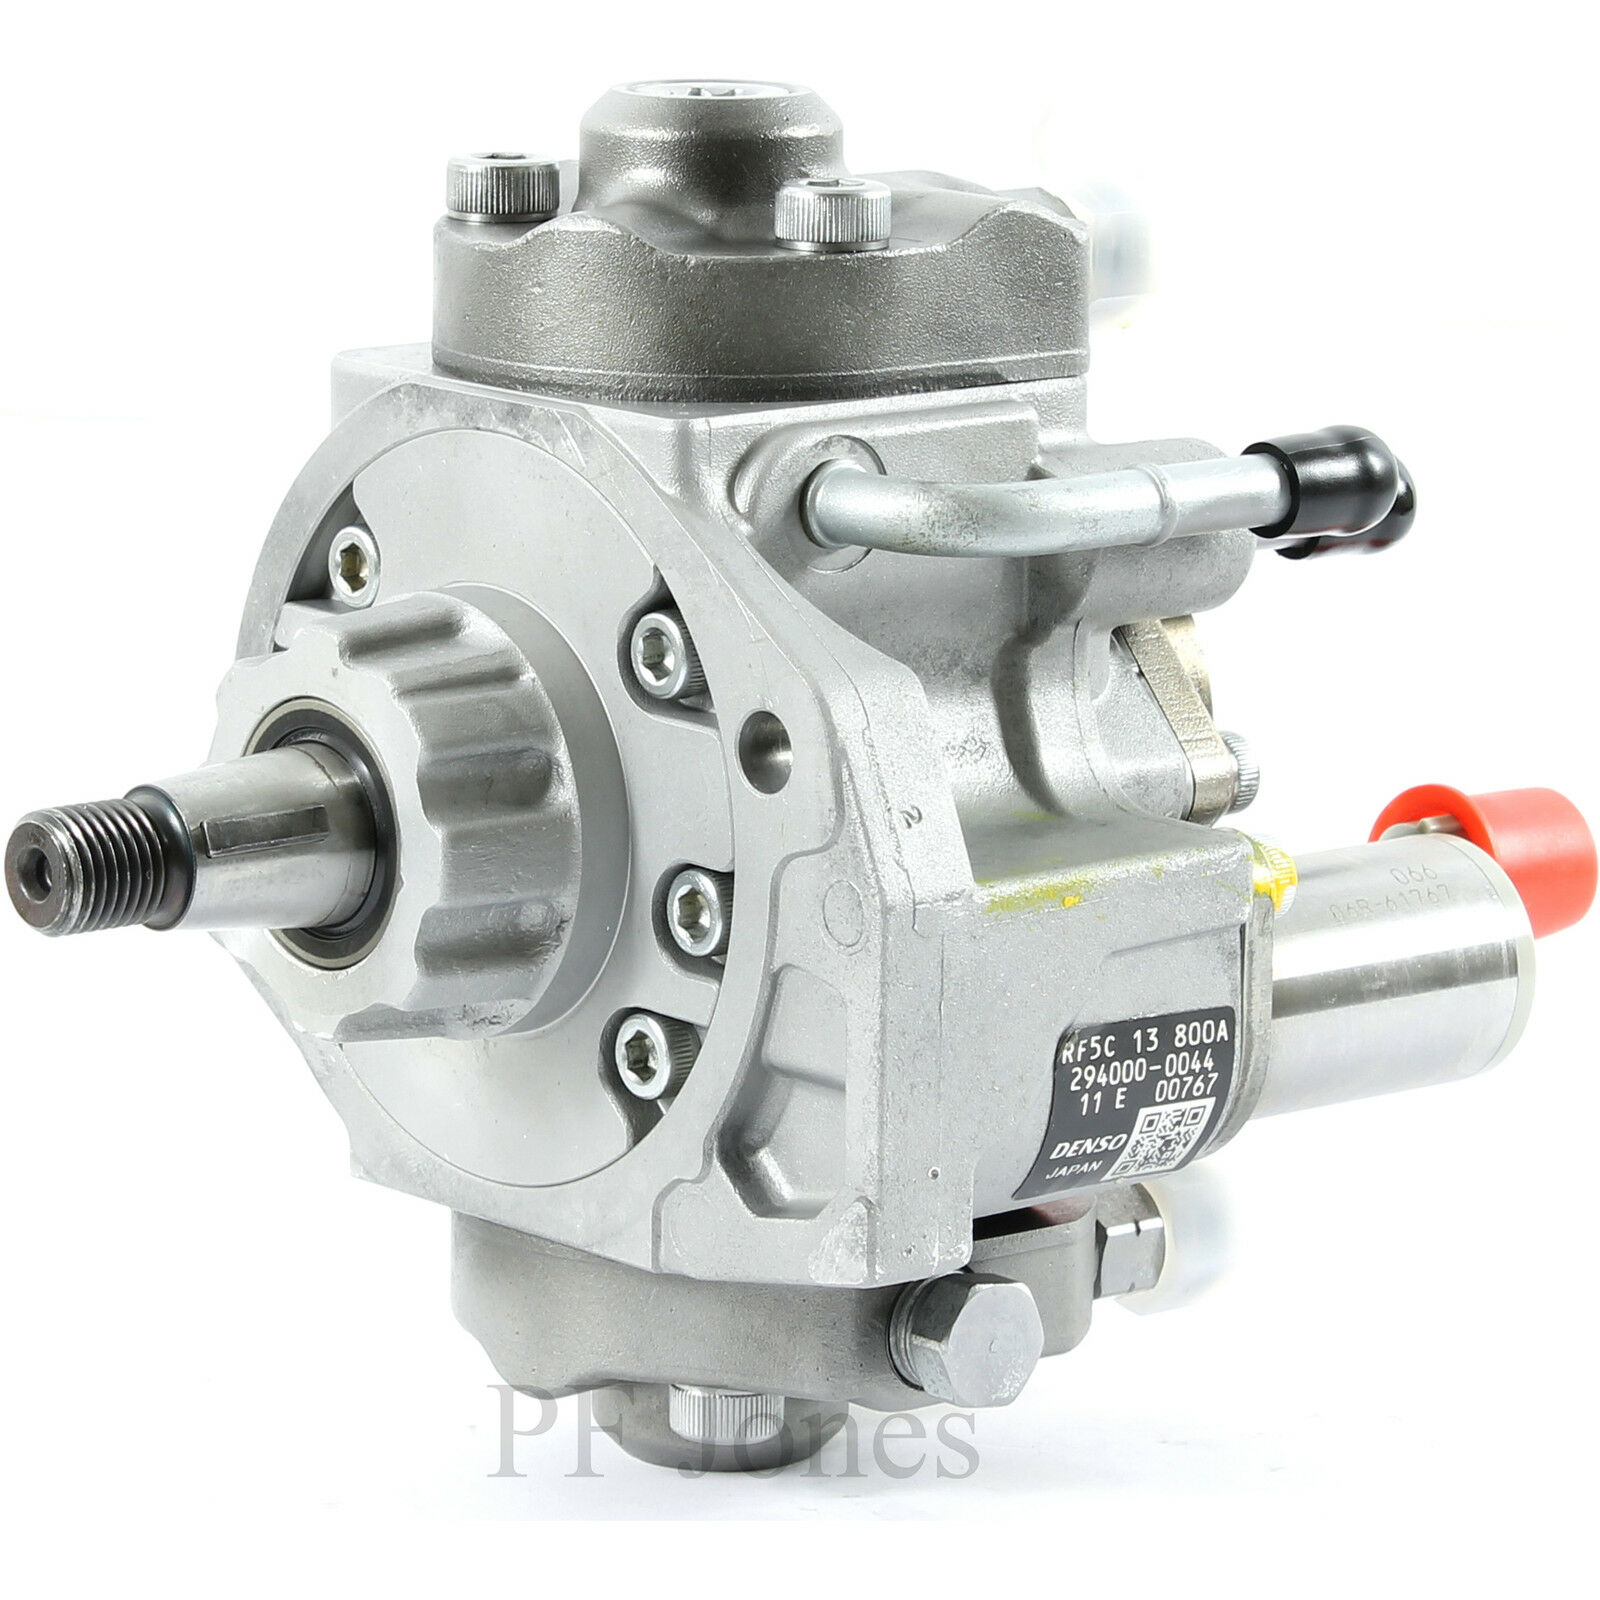 Reconditioned Denso Diesel Fuel Pump 294000-0040 - £60 Cash Back - See  Listing